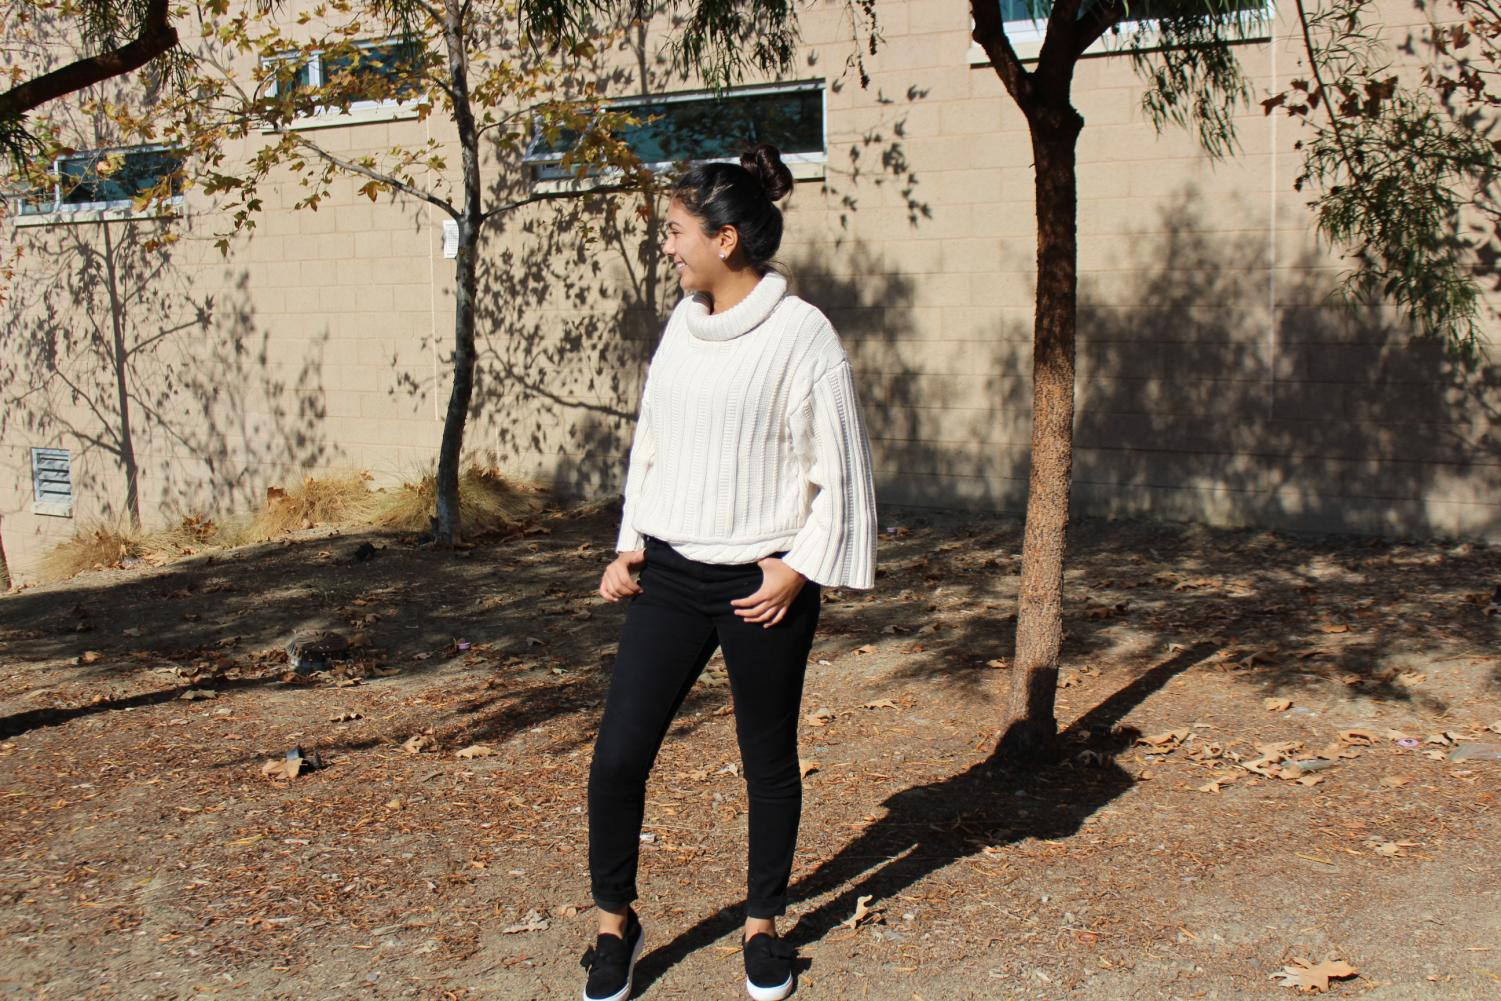 Senior+Sophia+Gonzalez+wears+an+intricately+designed+off-white+sweater+paired+and+dark+jeans.+With+her+hair+in+a+top-knot%2C+Gonzalez+is+ready+to+fight+the+upcoming+winter+weather.